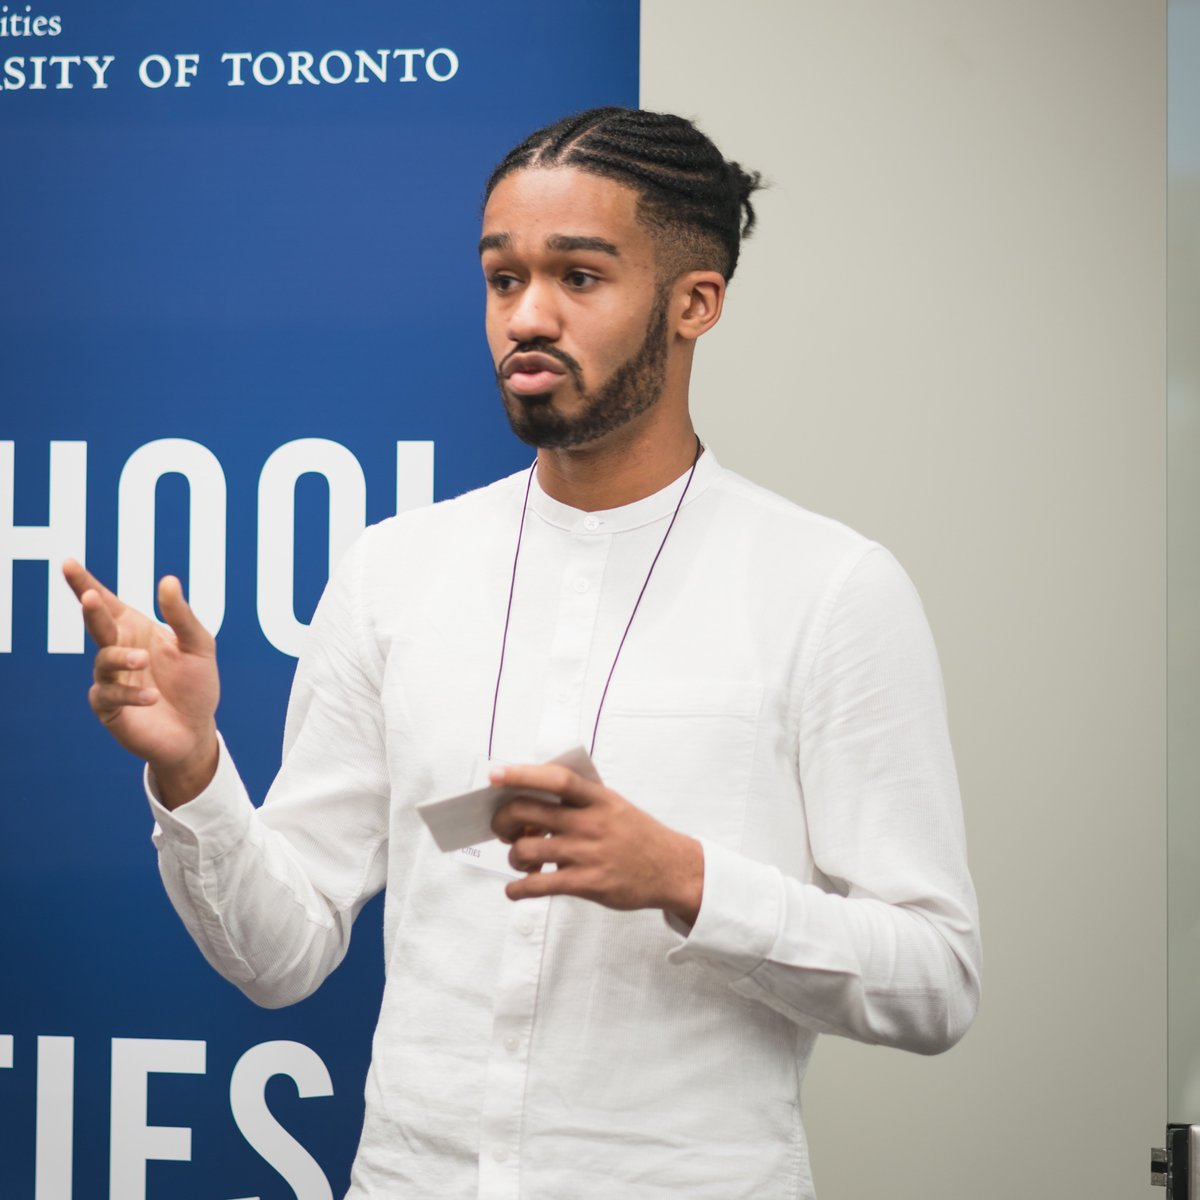 #UofTGrad20: Malek Abdel-Shehid's path to convocation included changing colleges, programs and courses, as well as a trip to Africa, all of which led to a keen focus on urban design and planning, community outreach and education.  Learn more: